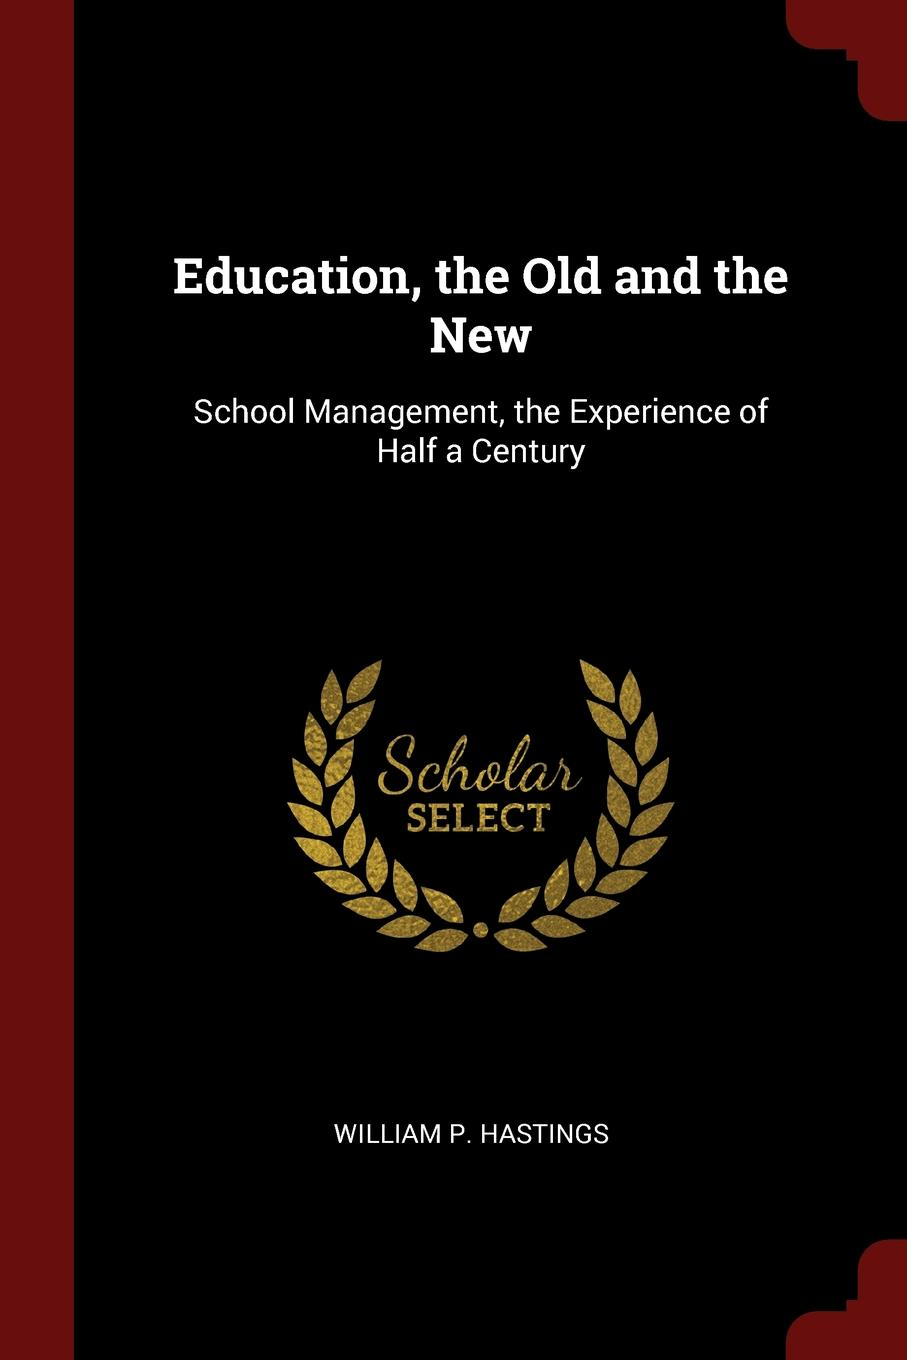 William P. Hastings Education, the Old and the New. School Management, the Experience of Half a Century